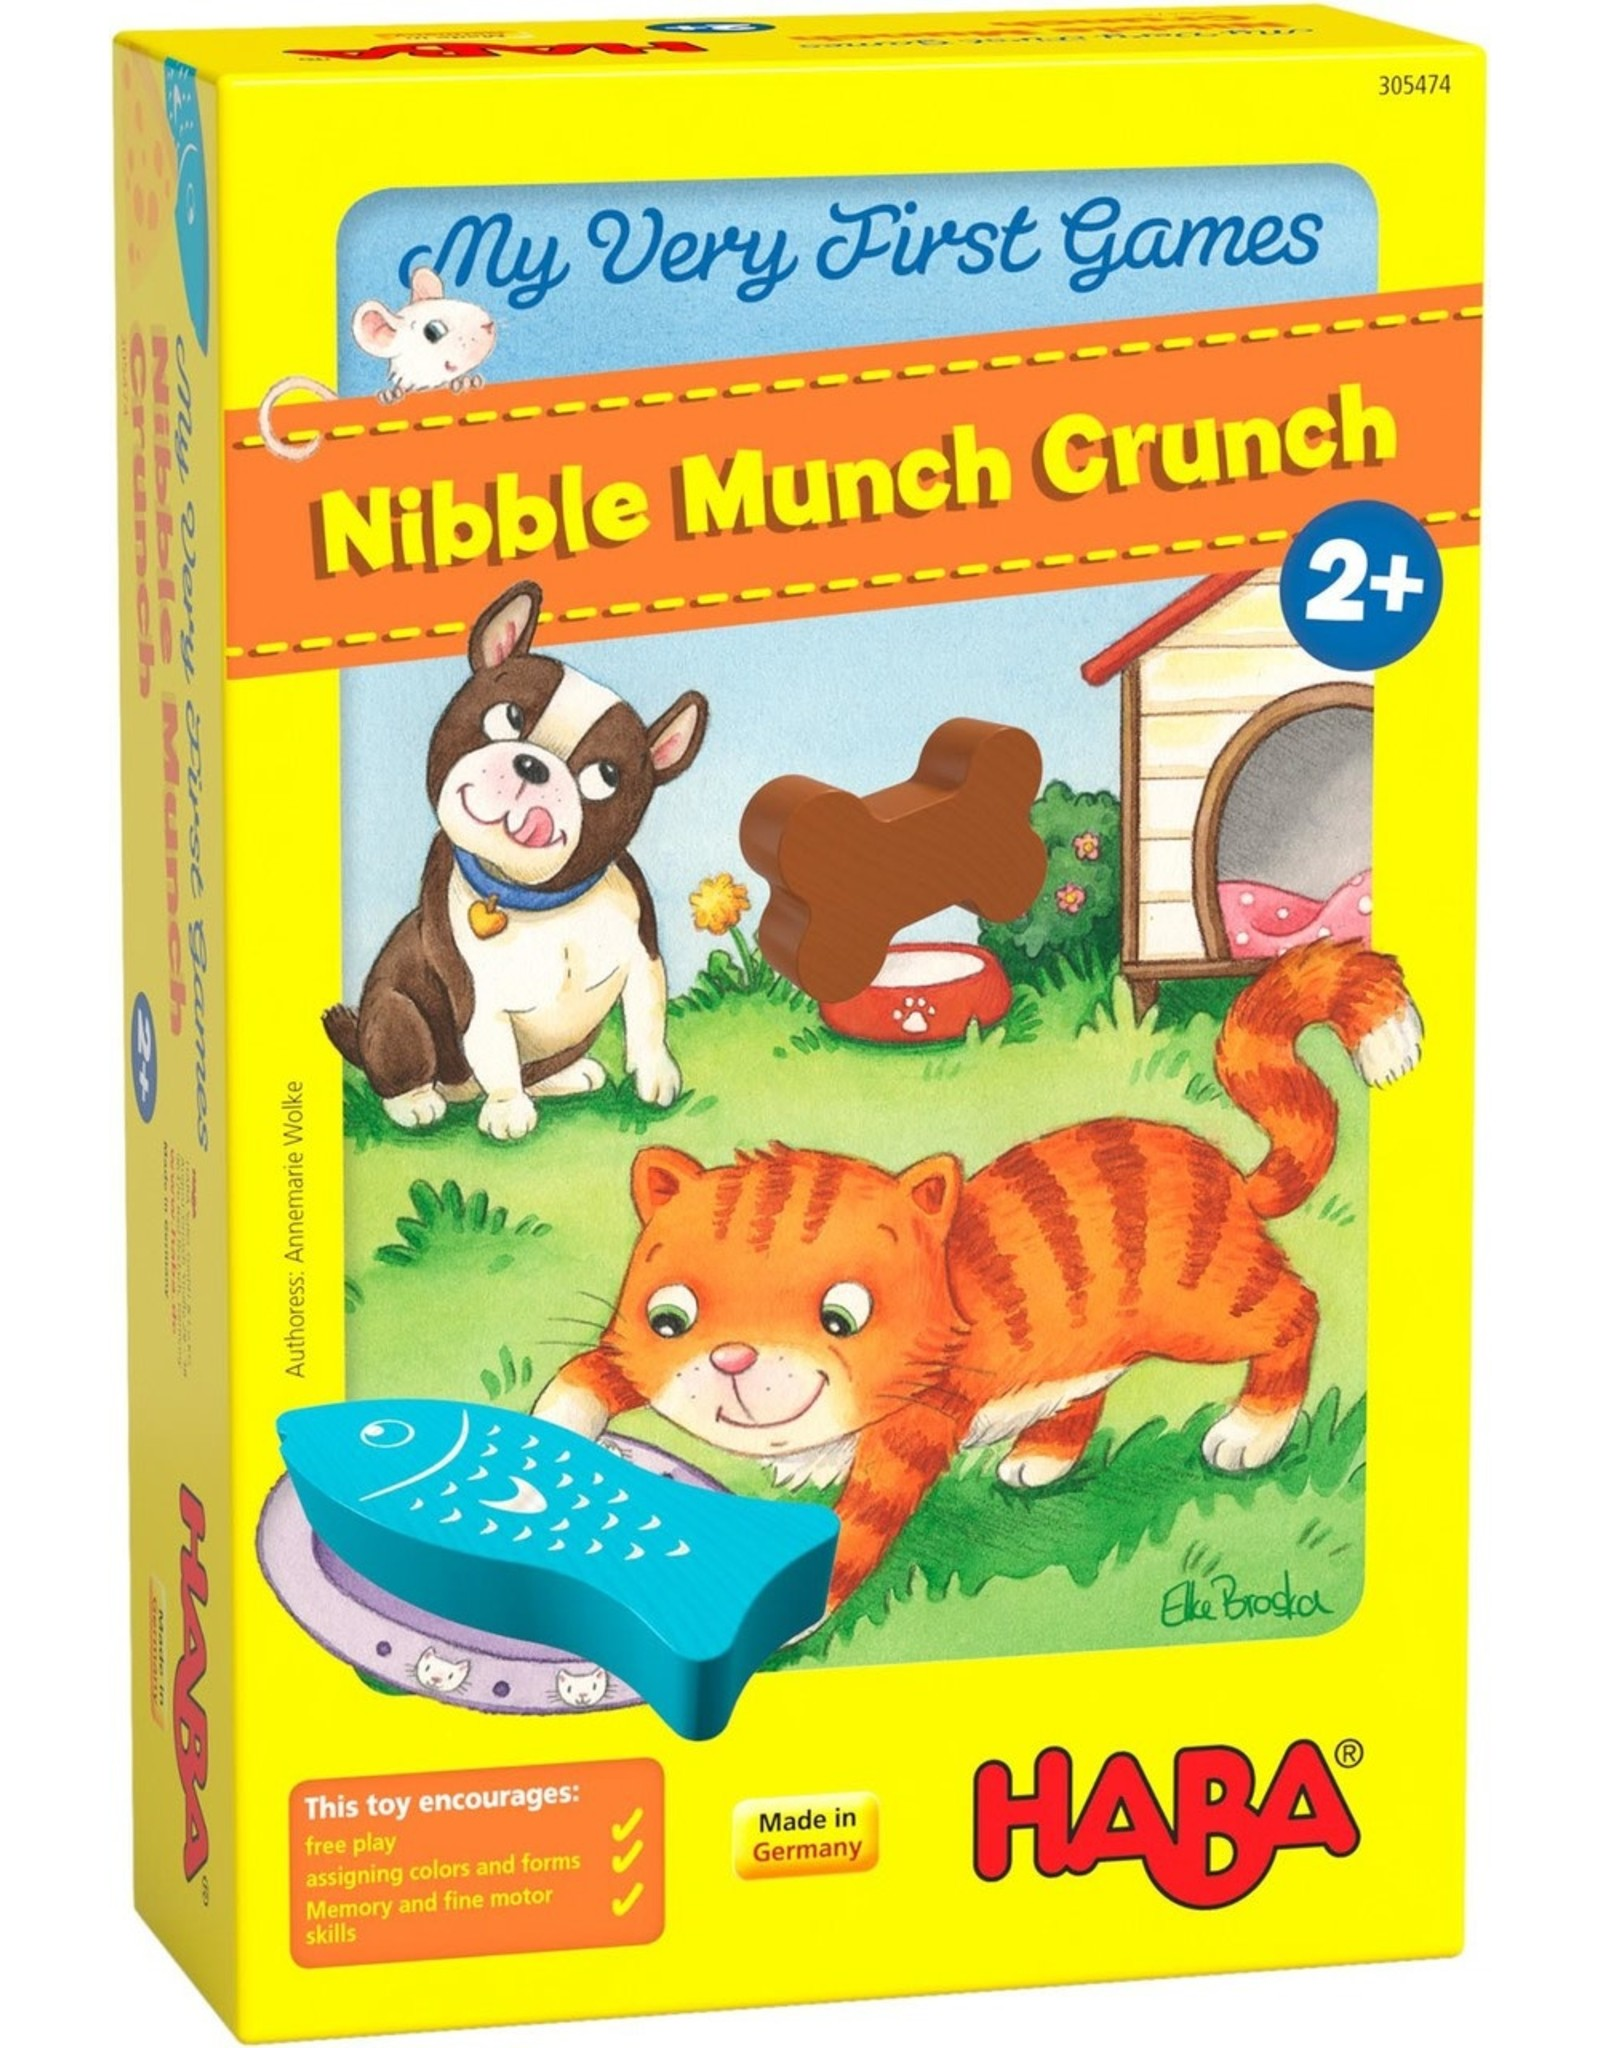 Haba Nibble Munch Crunch